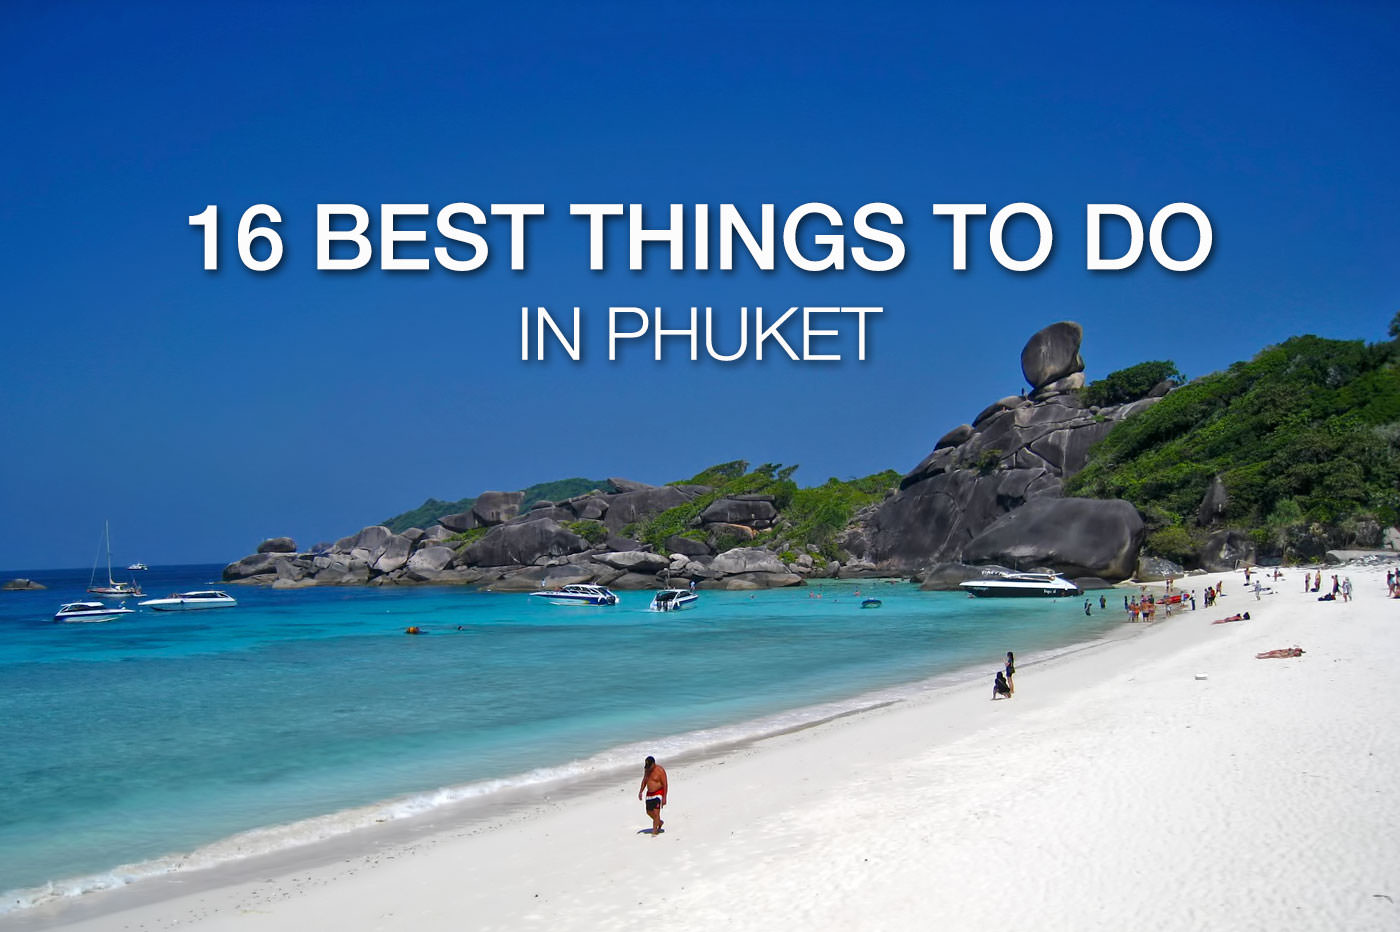 16 Best Things to Do in Phuket (Updated!)